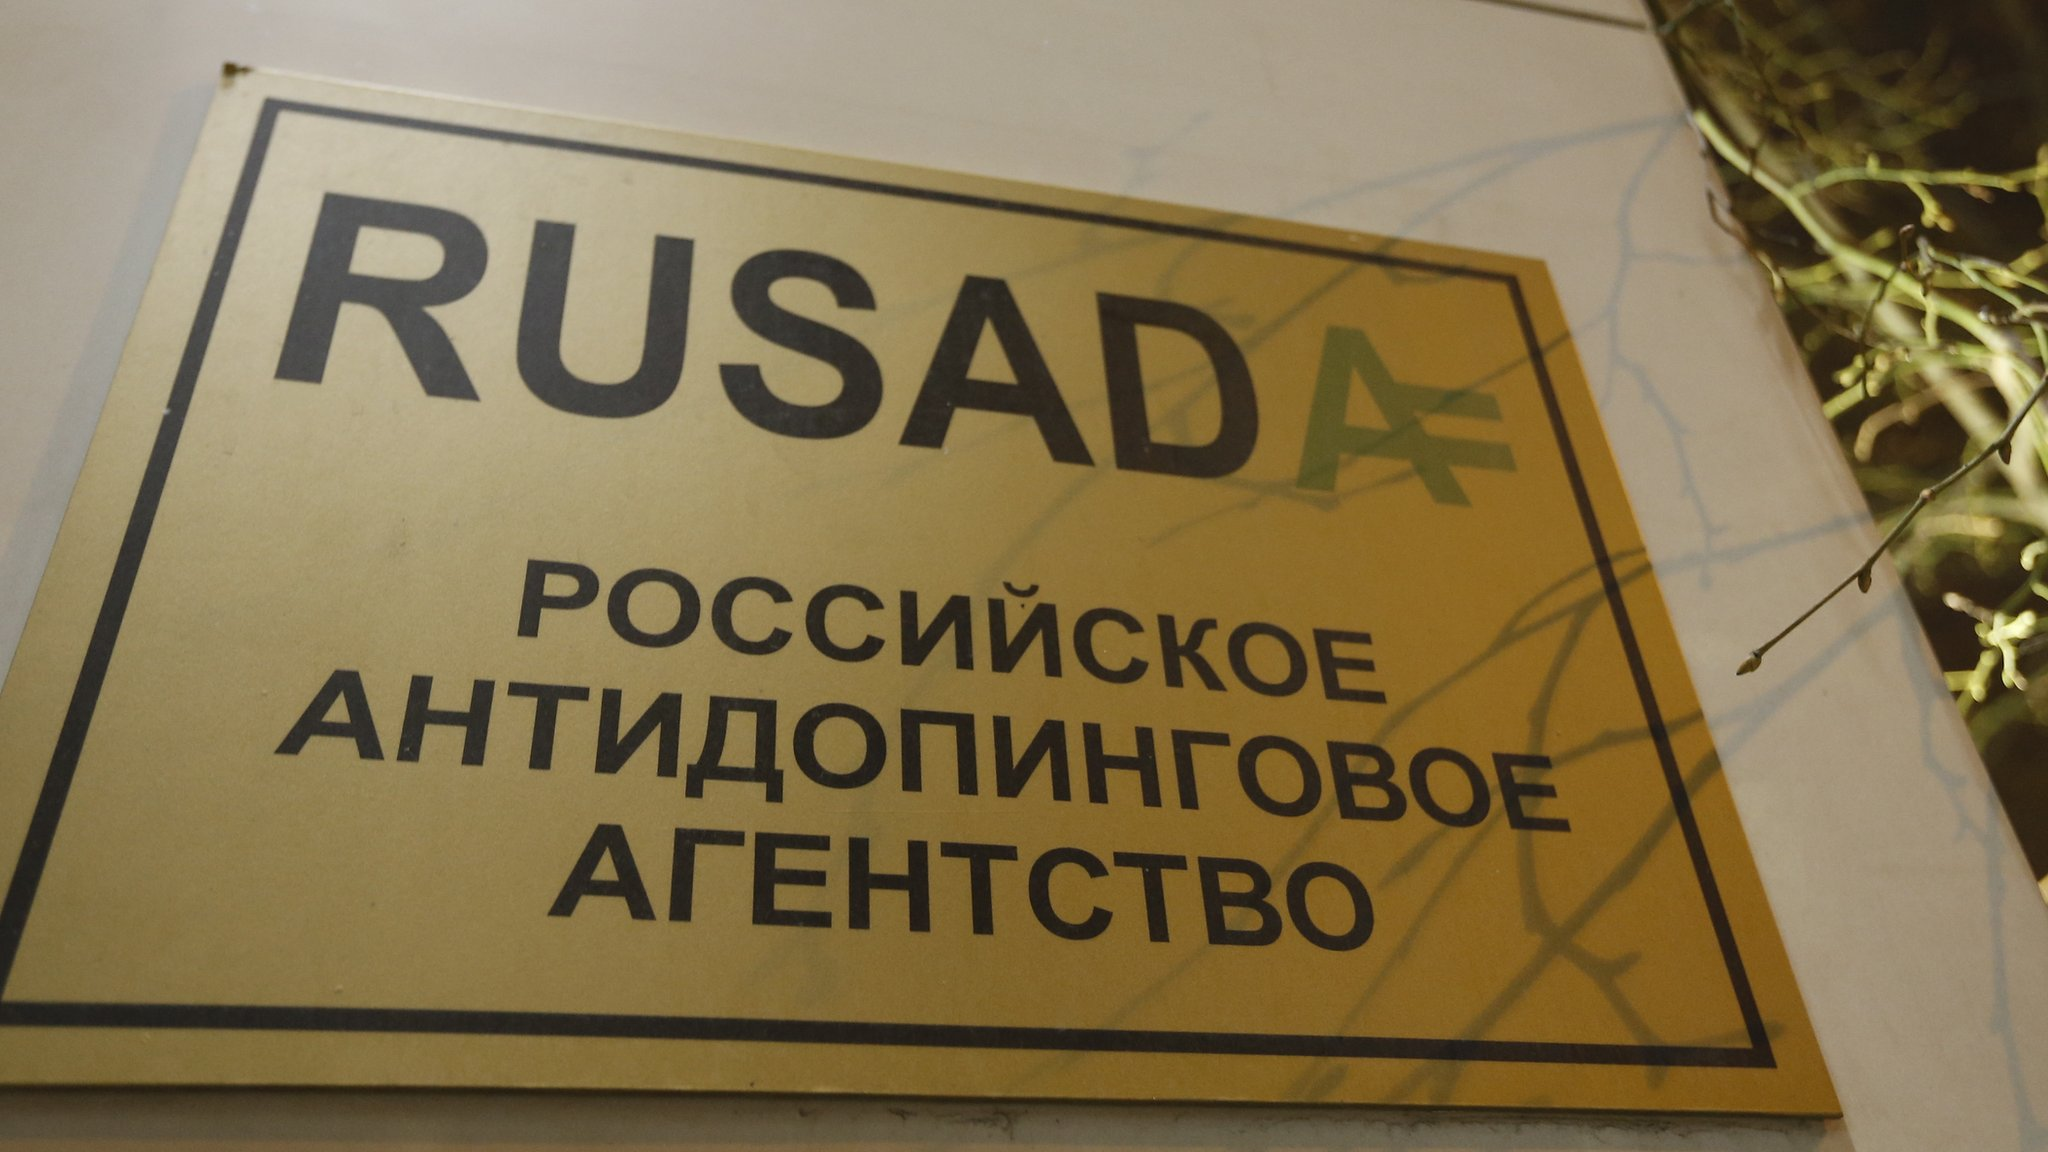 'Lifting Russia doping ban would be catastrophic'